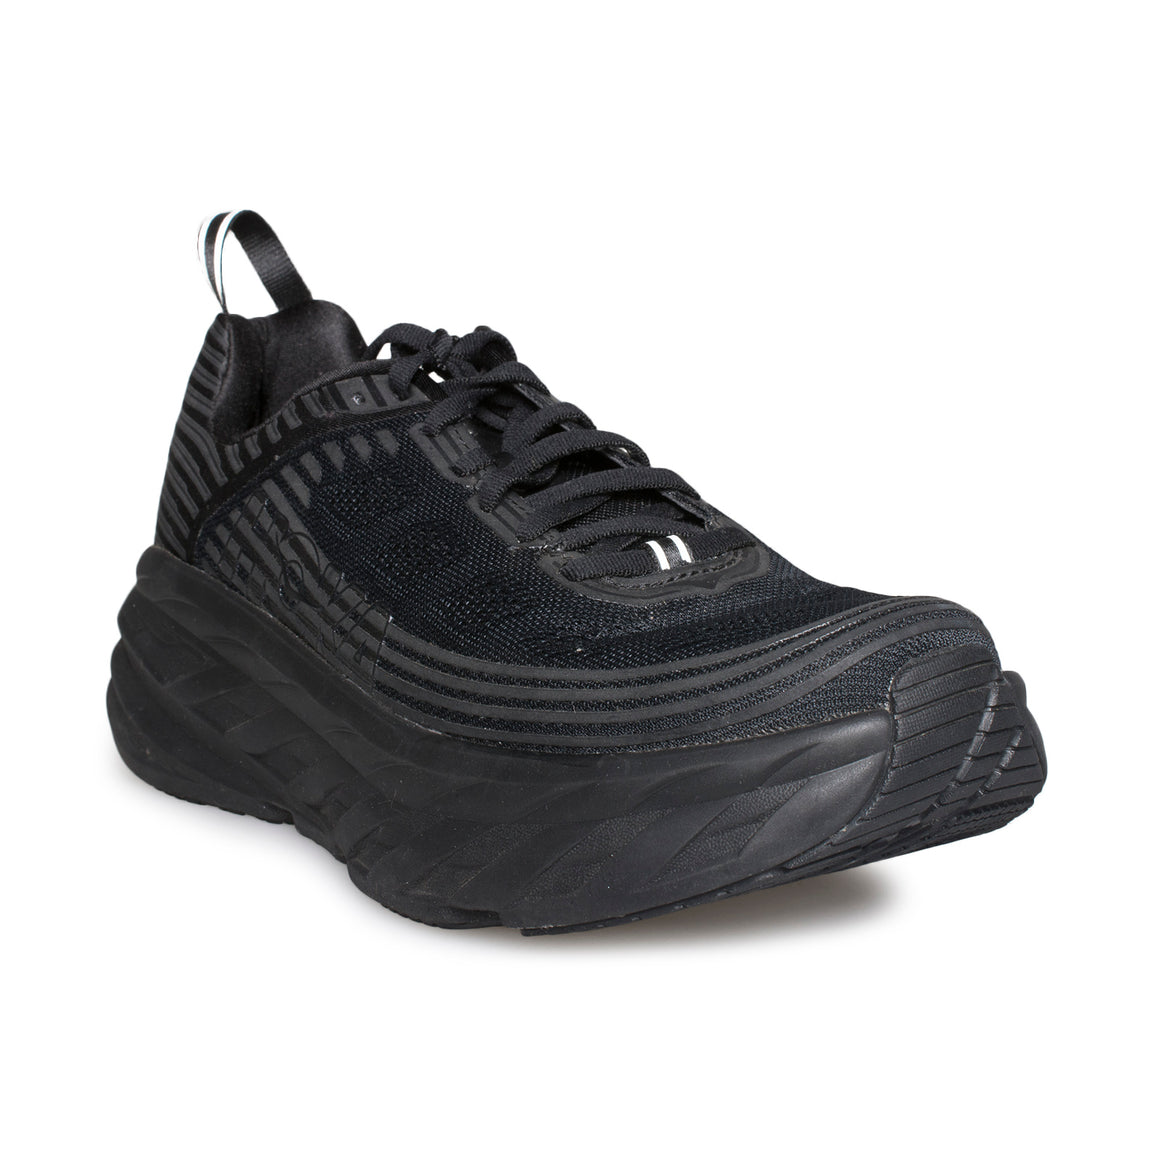 HOKA ONE ONE Bondi 6 Black / Black Running Shoes - Men's